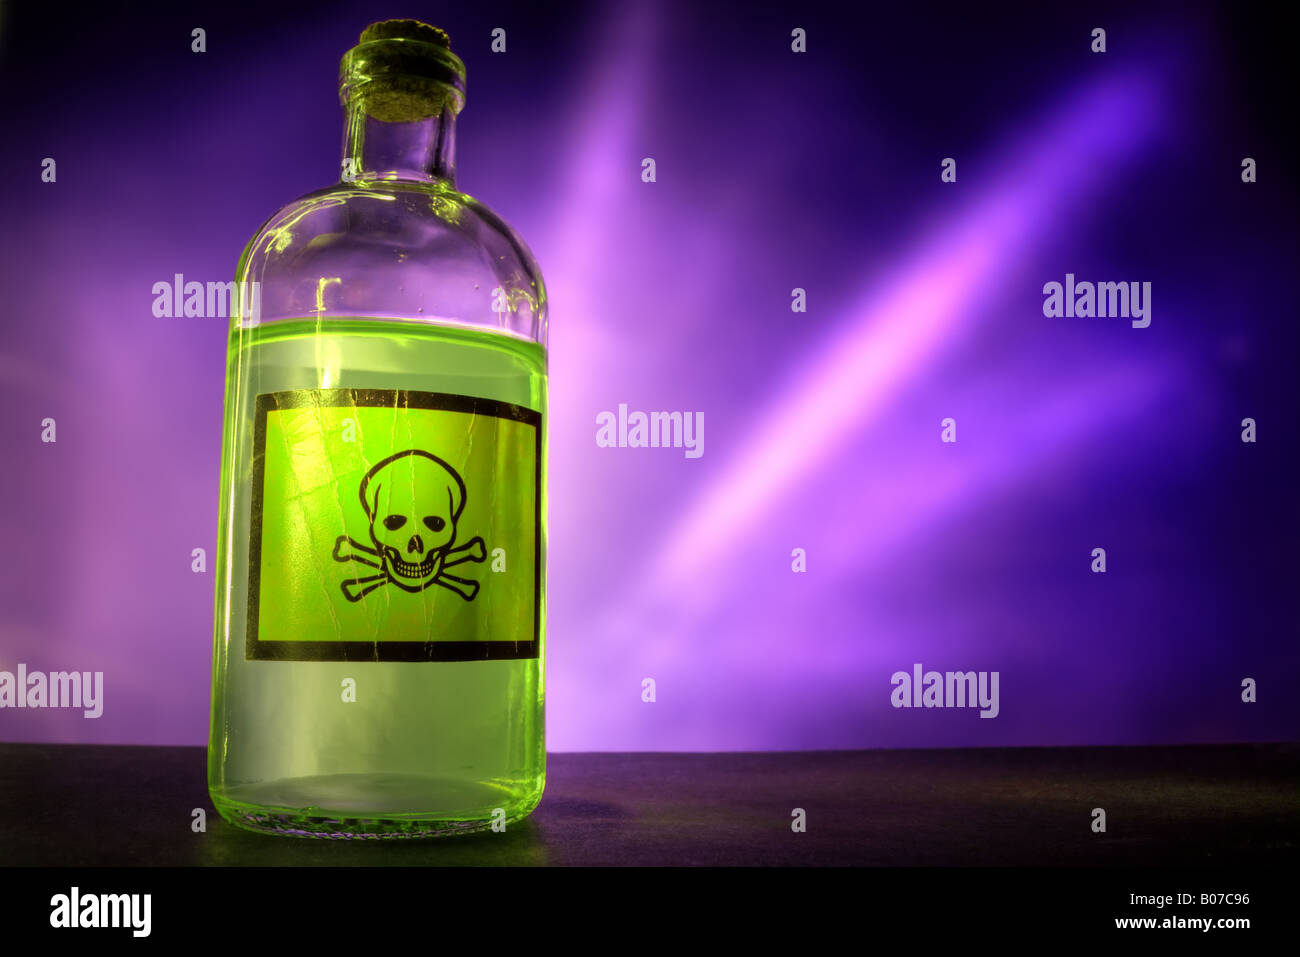 Poison bottle - Stock Image